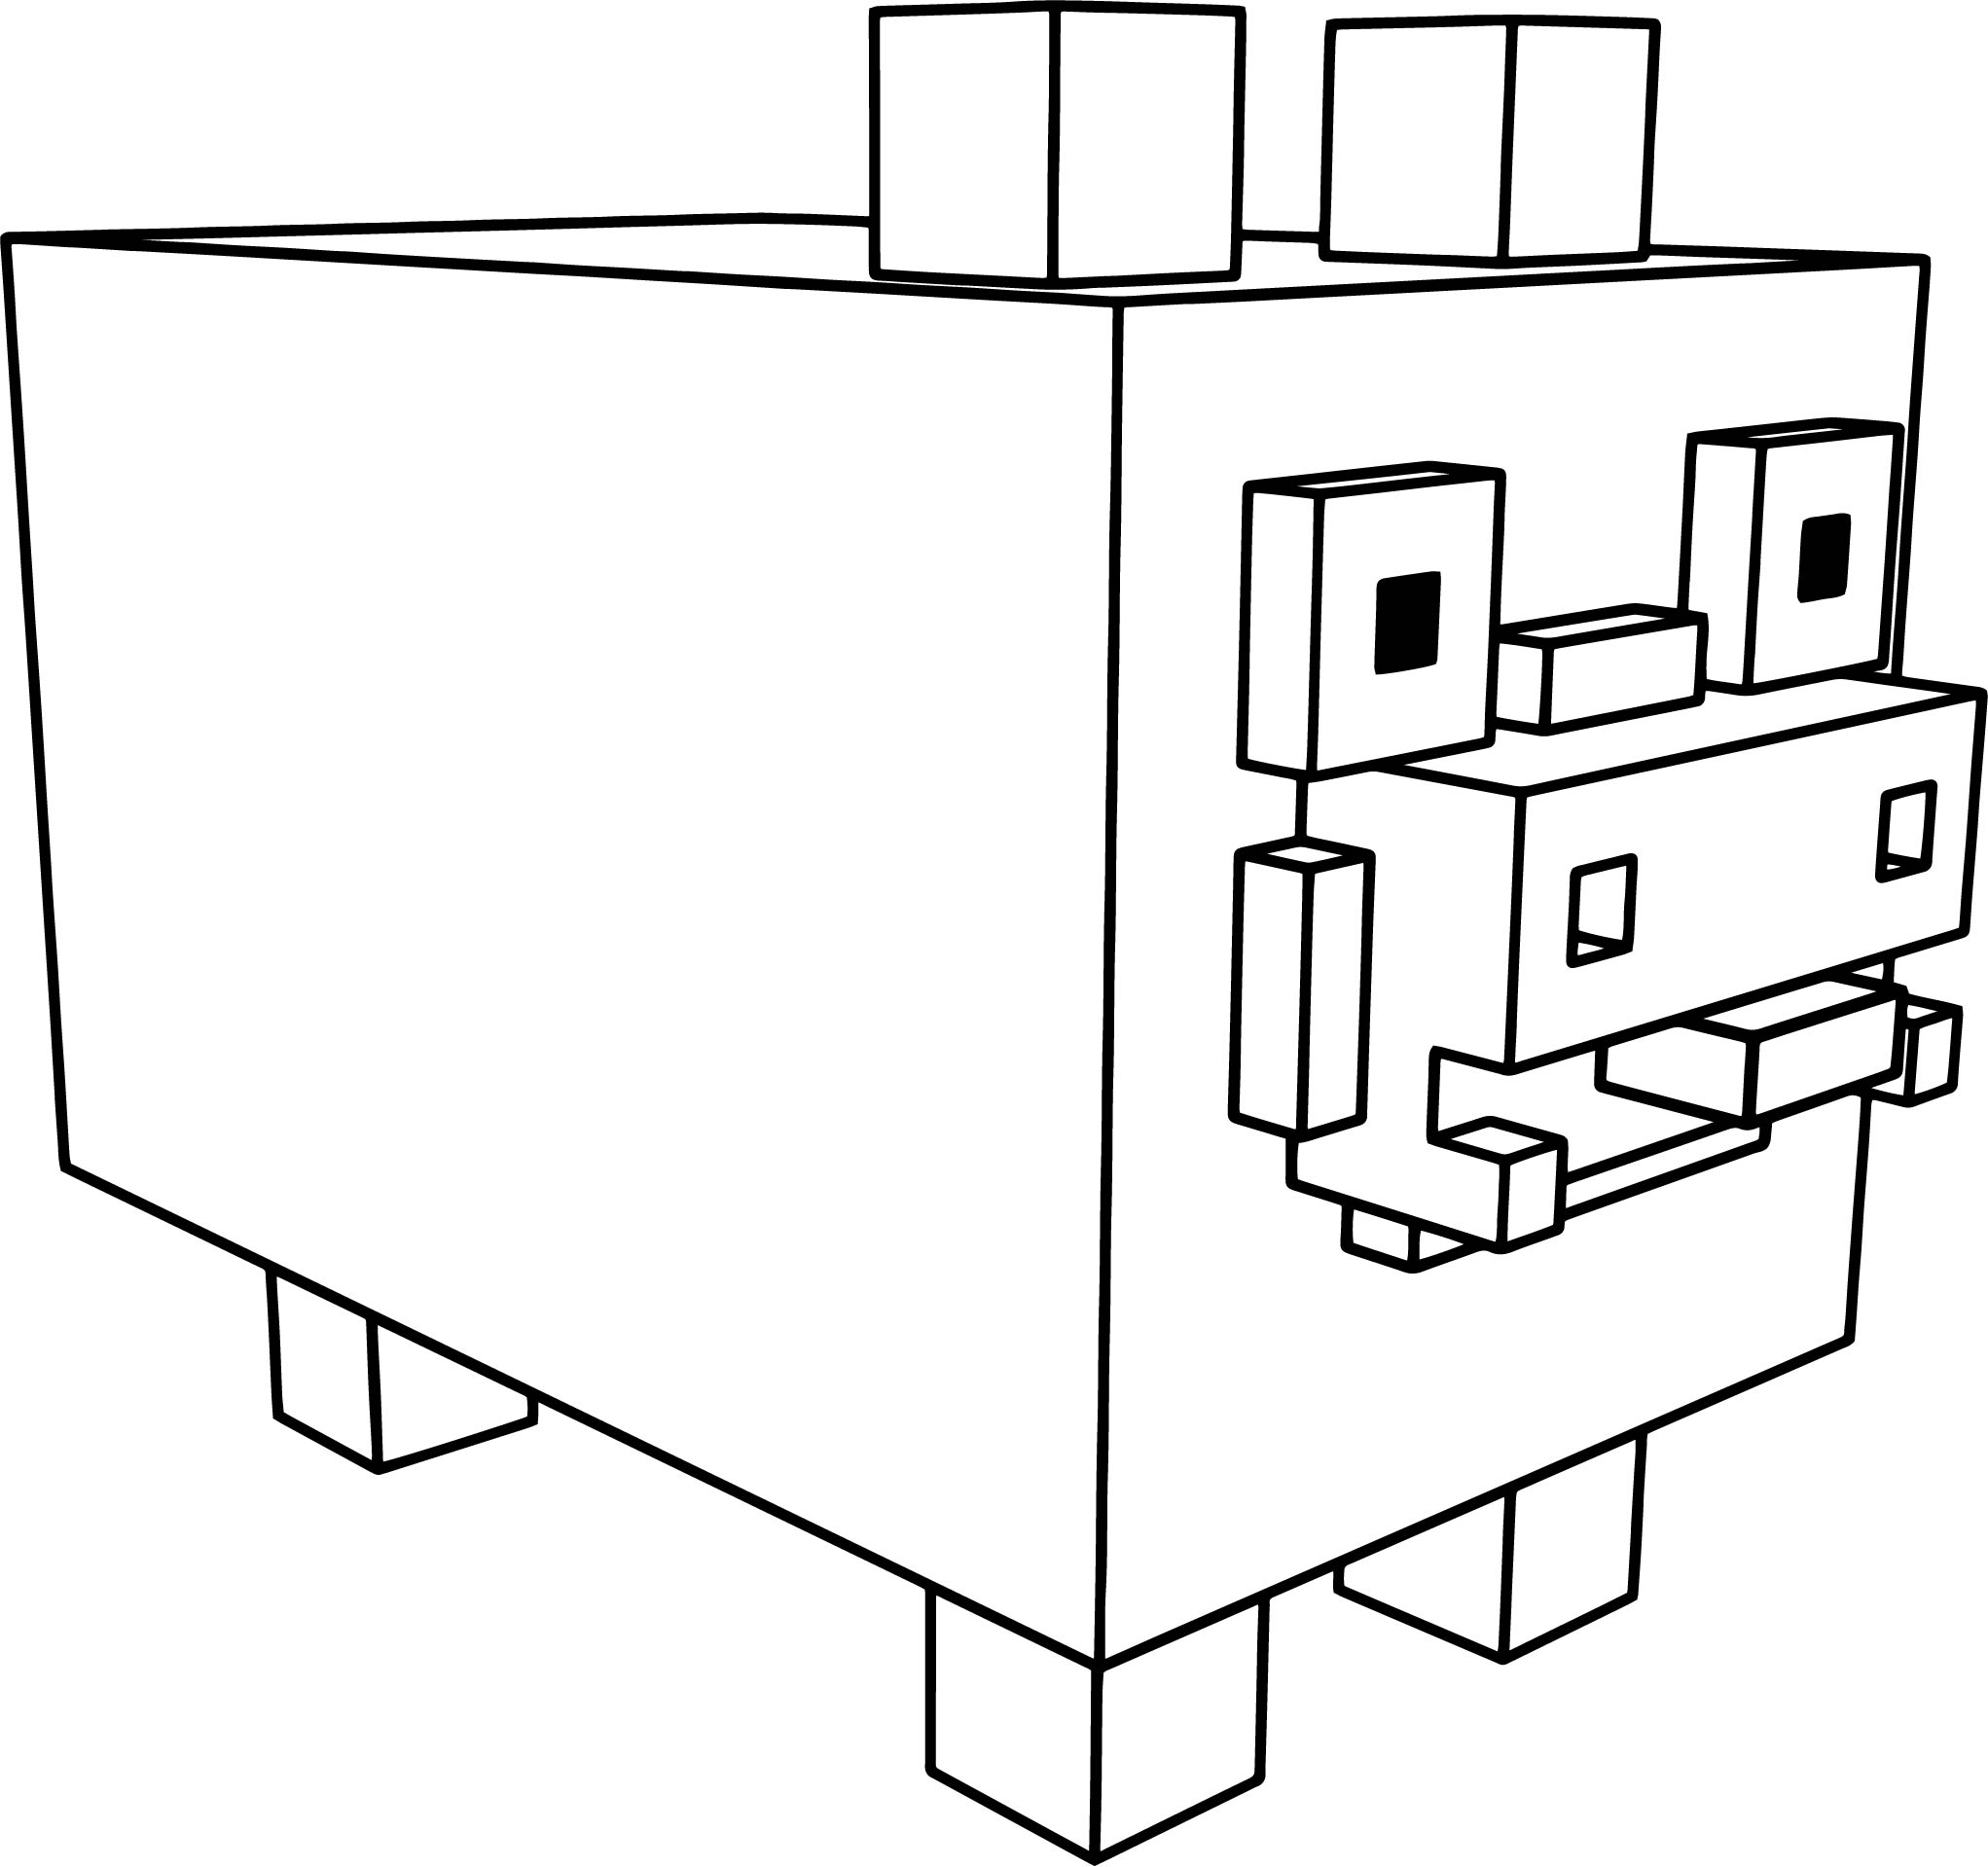 Voxel Pig Coloring Page